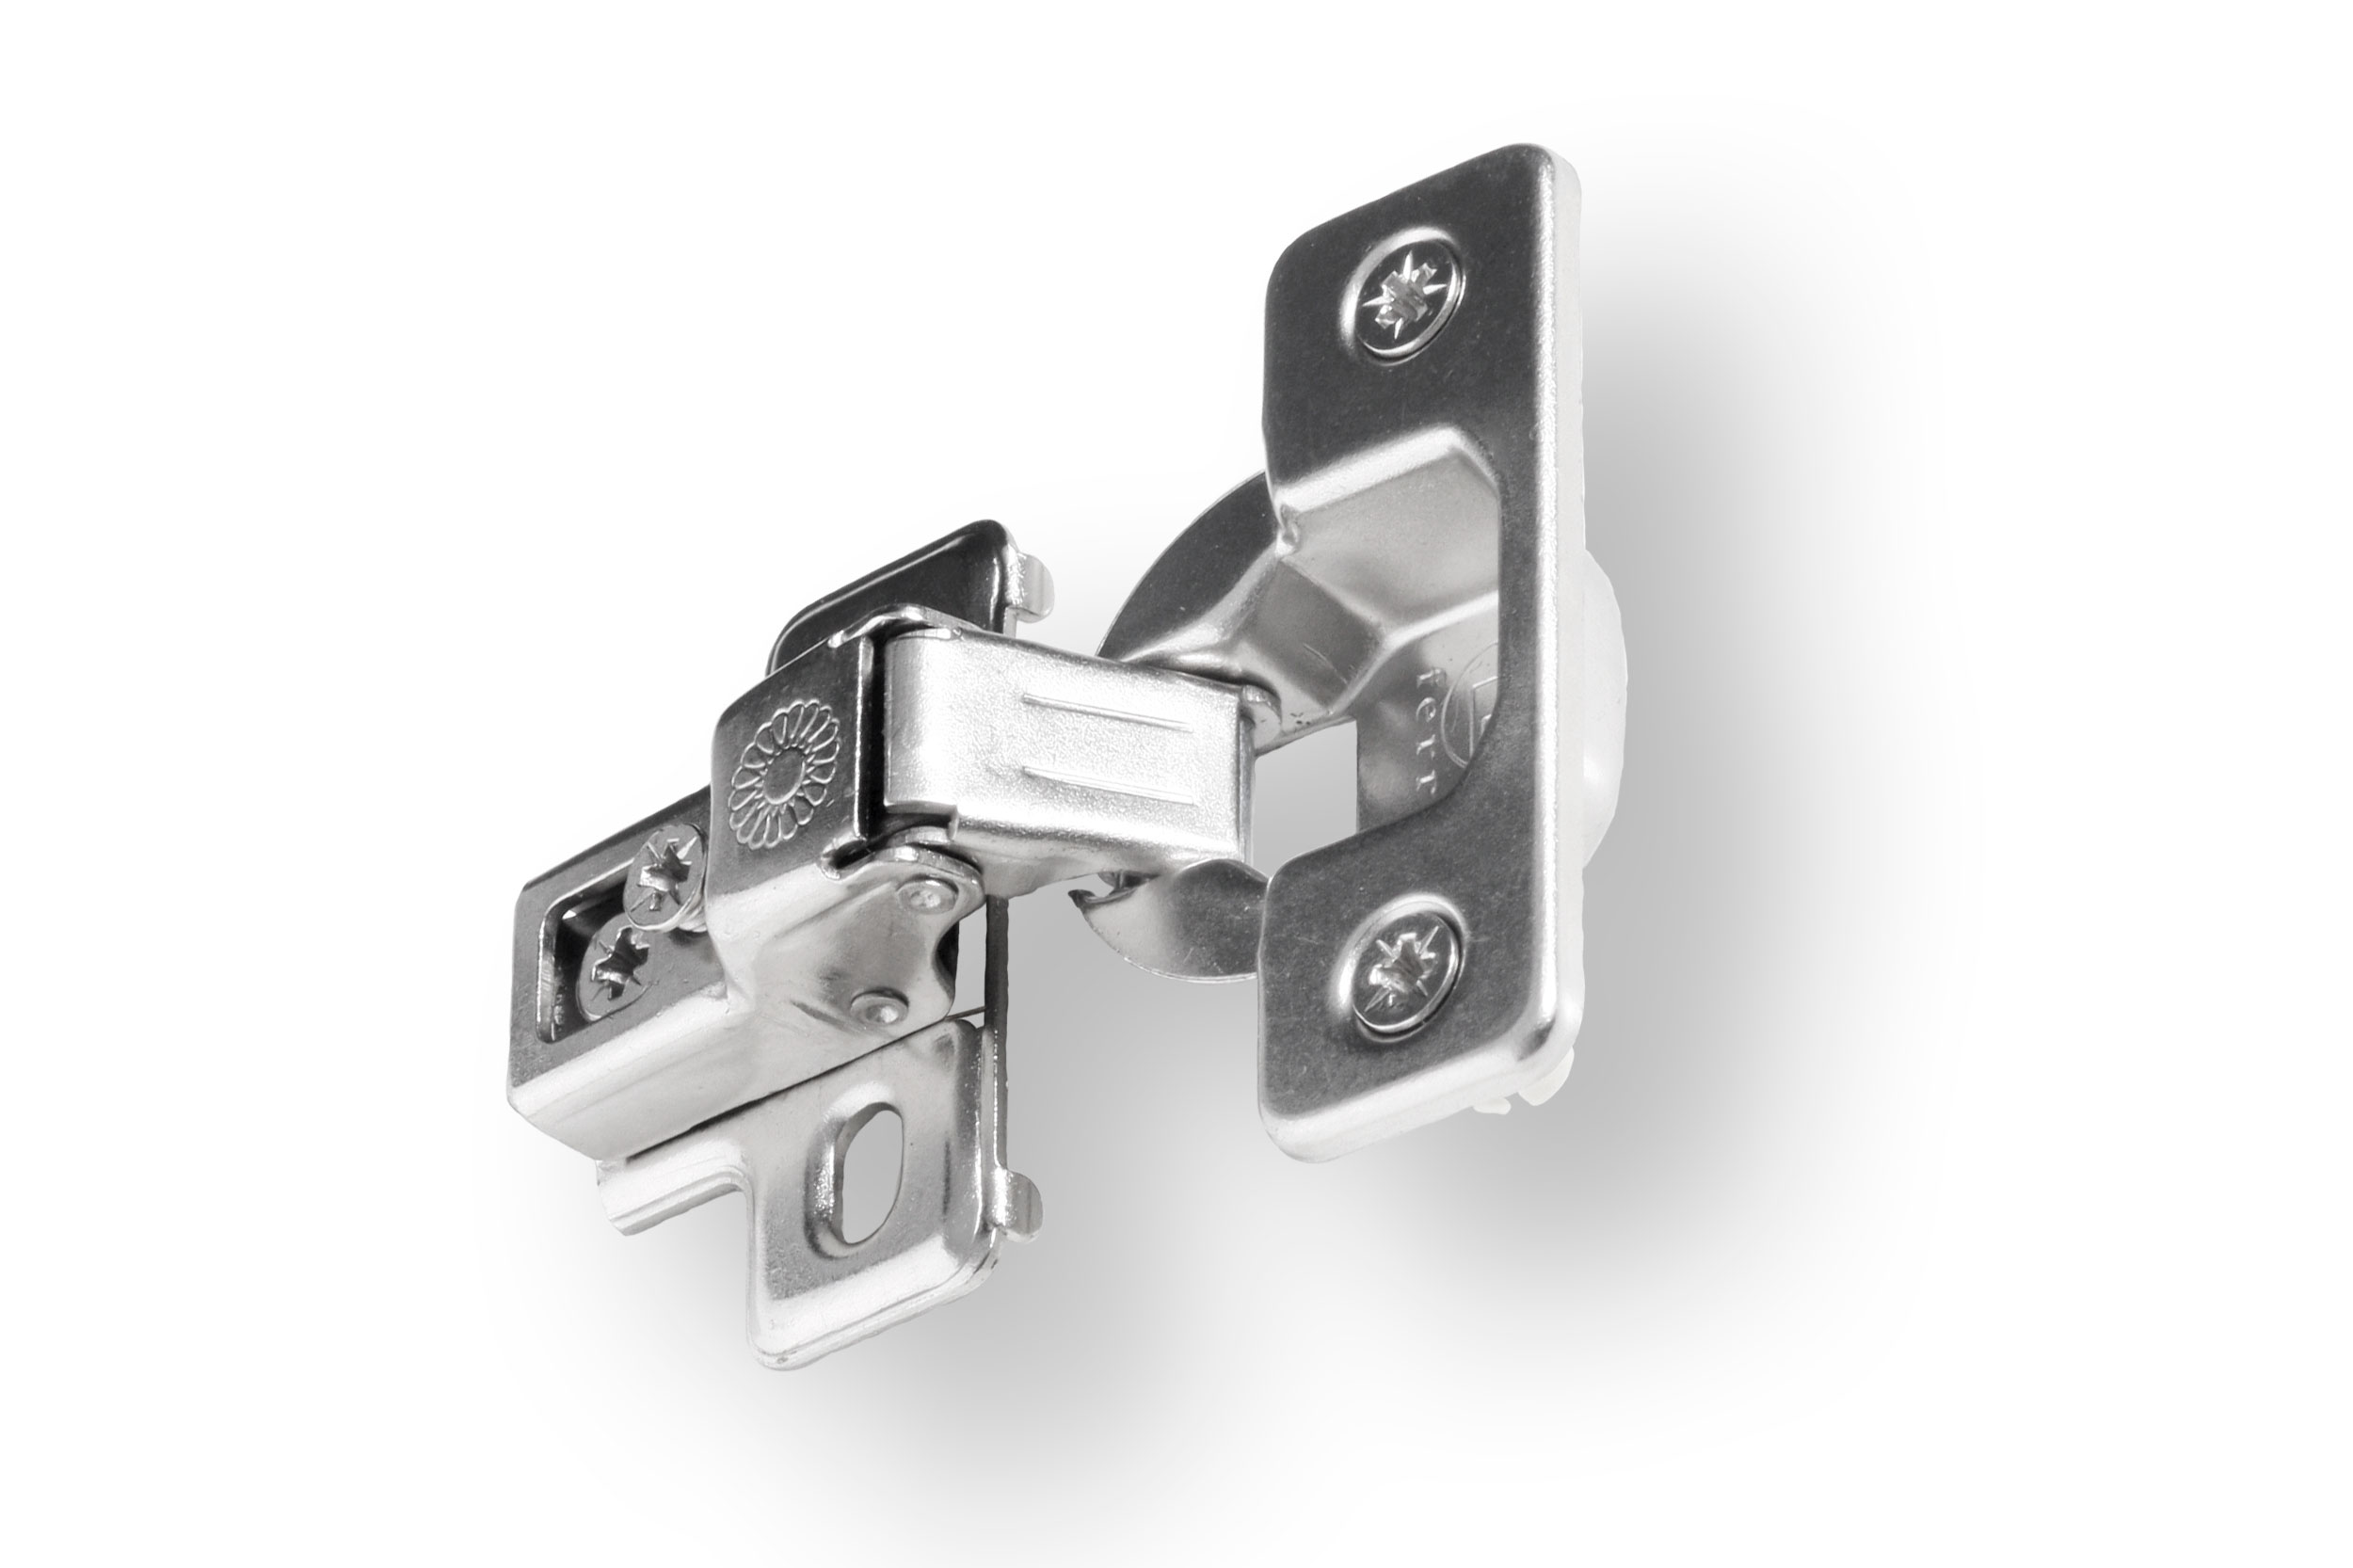 hinge soft product clip on marathon overlay hinges full and systems close opening improved series cabinet dowels dtc